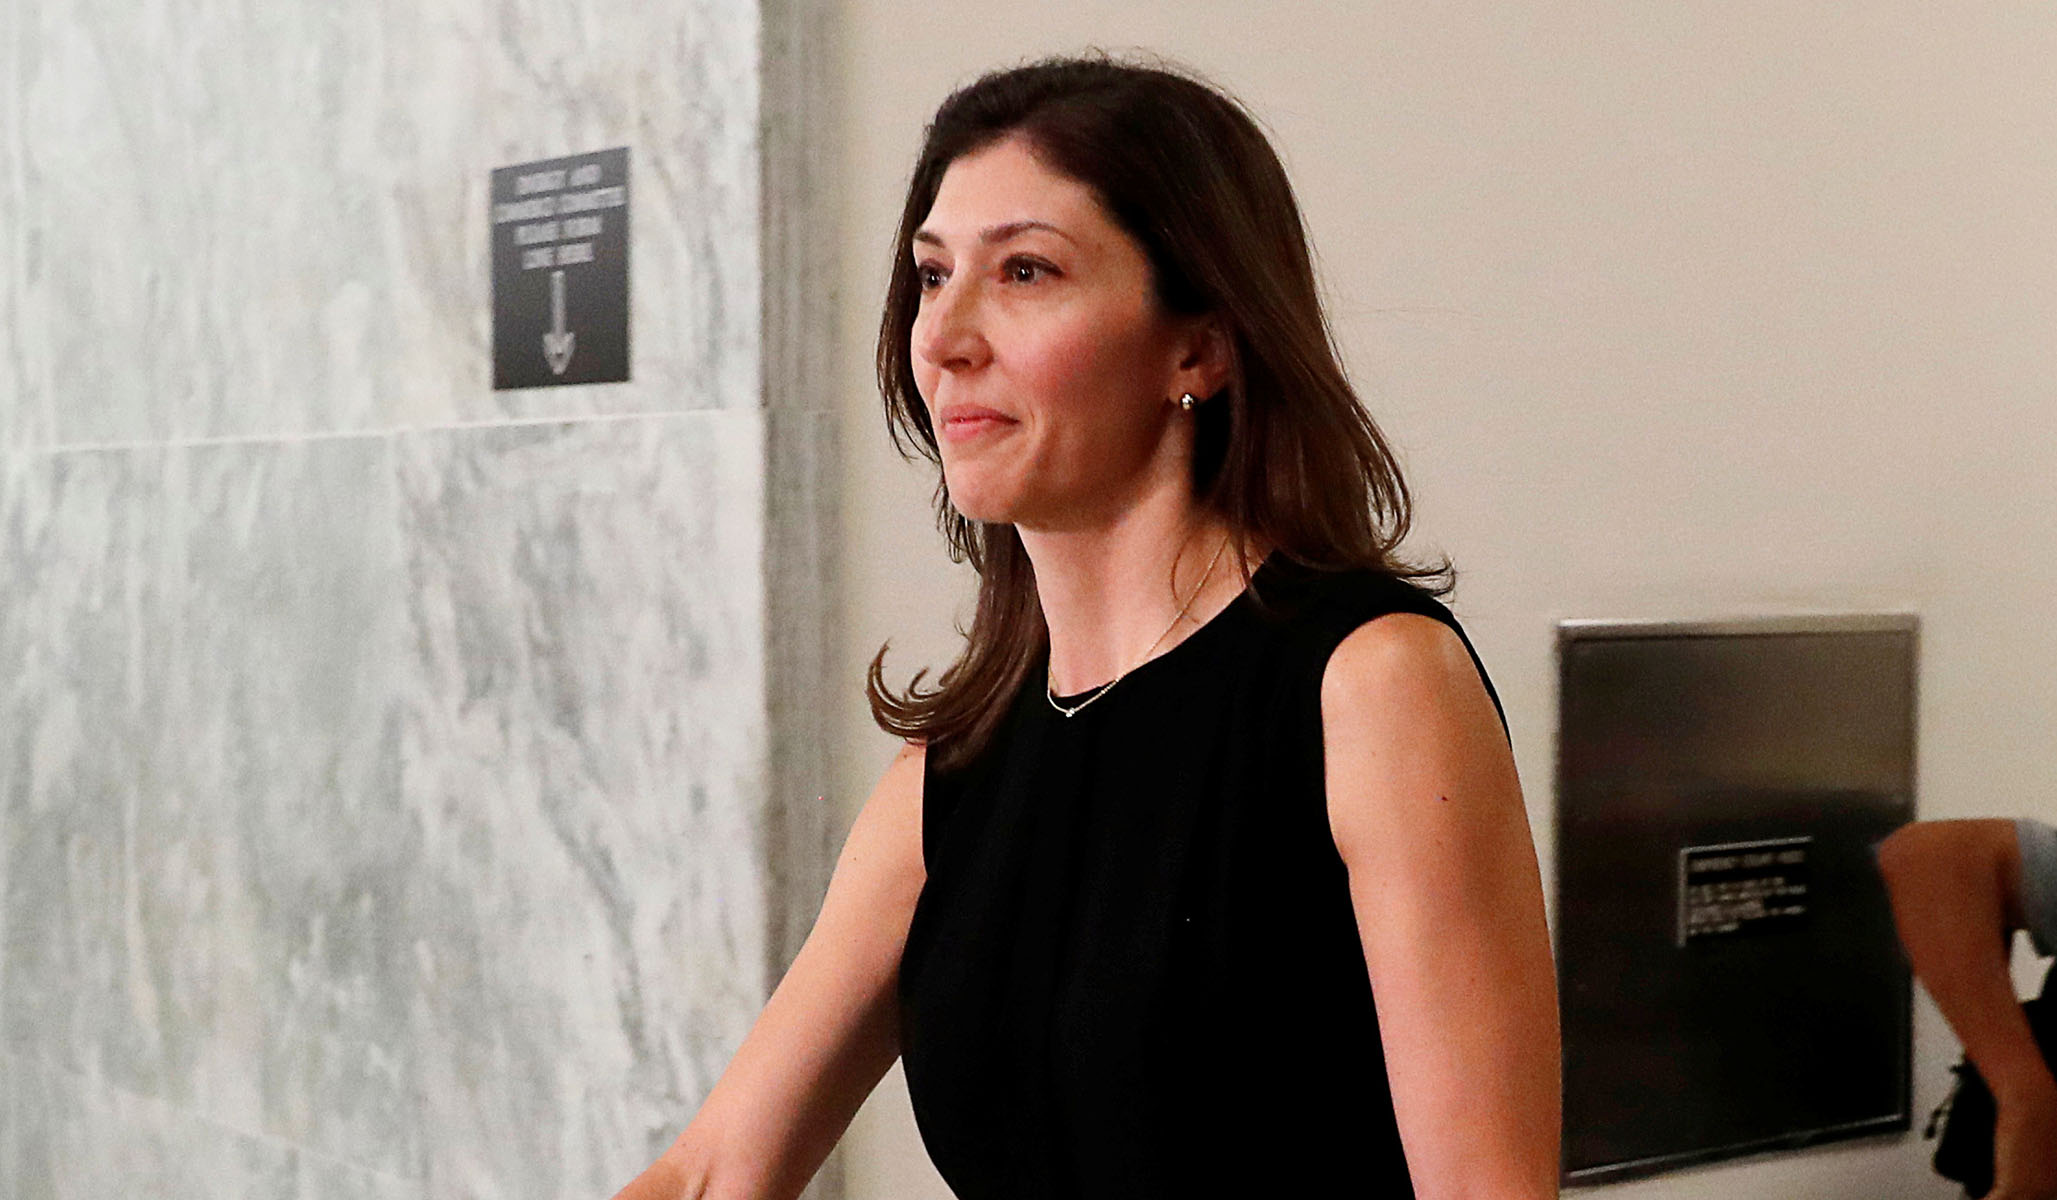 Lisa Page Breaks Silence, Claims Comey's Firing was 'Like a Funeral, Only Worse' in First Interview